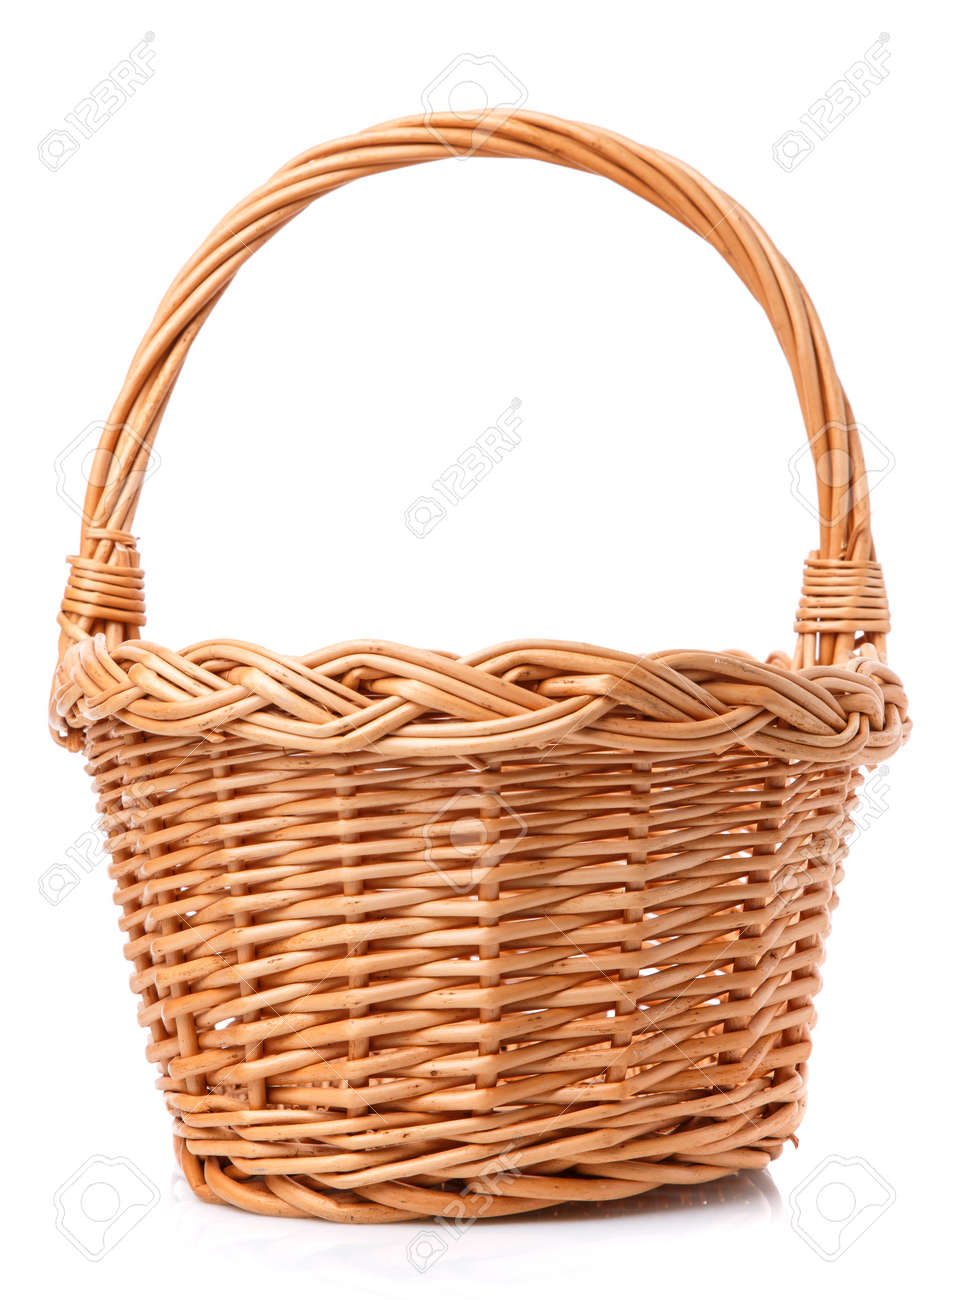 Big wicker basket on a white background. The basket is made of vines. - 149831236